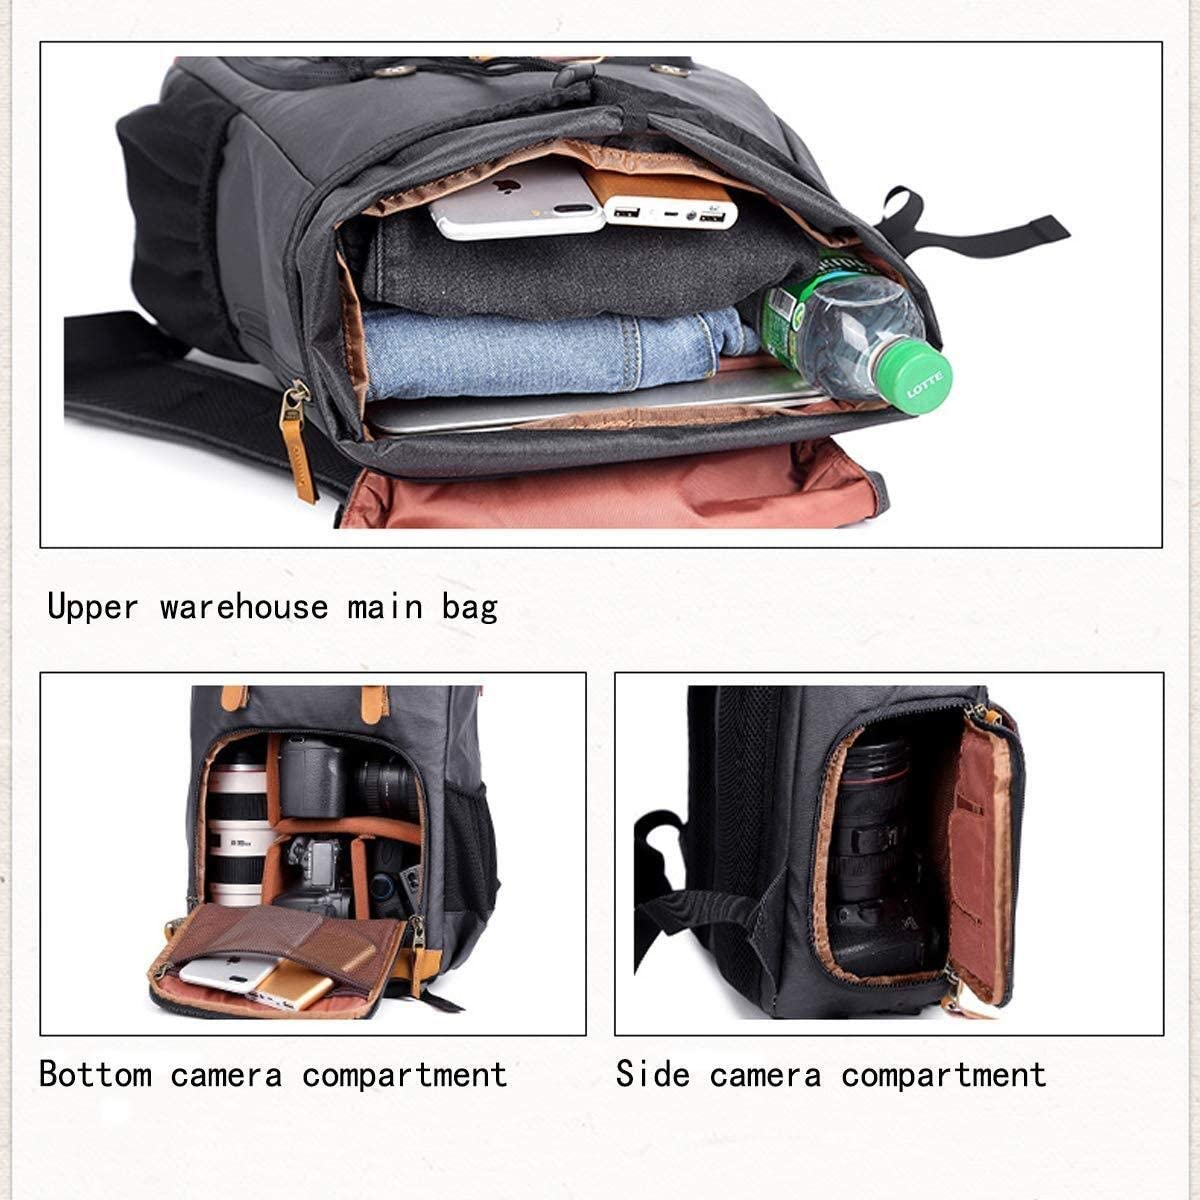 30 X 19 X 42 cm//Dark Blue A15 Waitousanqi Casual Canvas SLR Camera Backpack Large-Capacity Bag Outdoor Camera Backpack Laptop Tripod Lens and Accessories